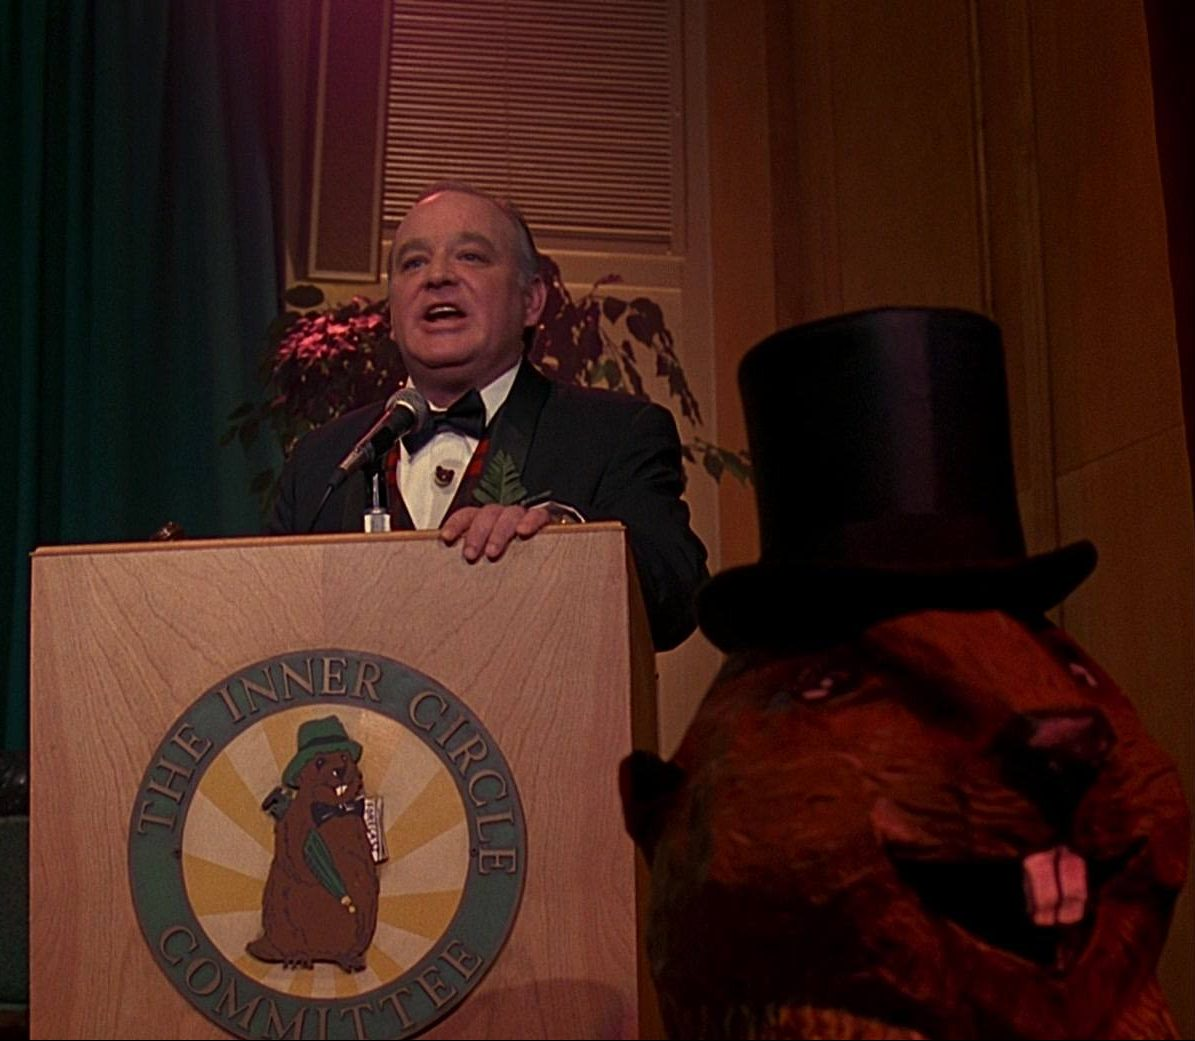 43 4 e1601297601778 20 Things You Might Not Have Realised About Groundhog Day